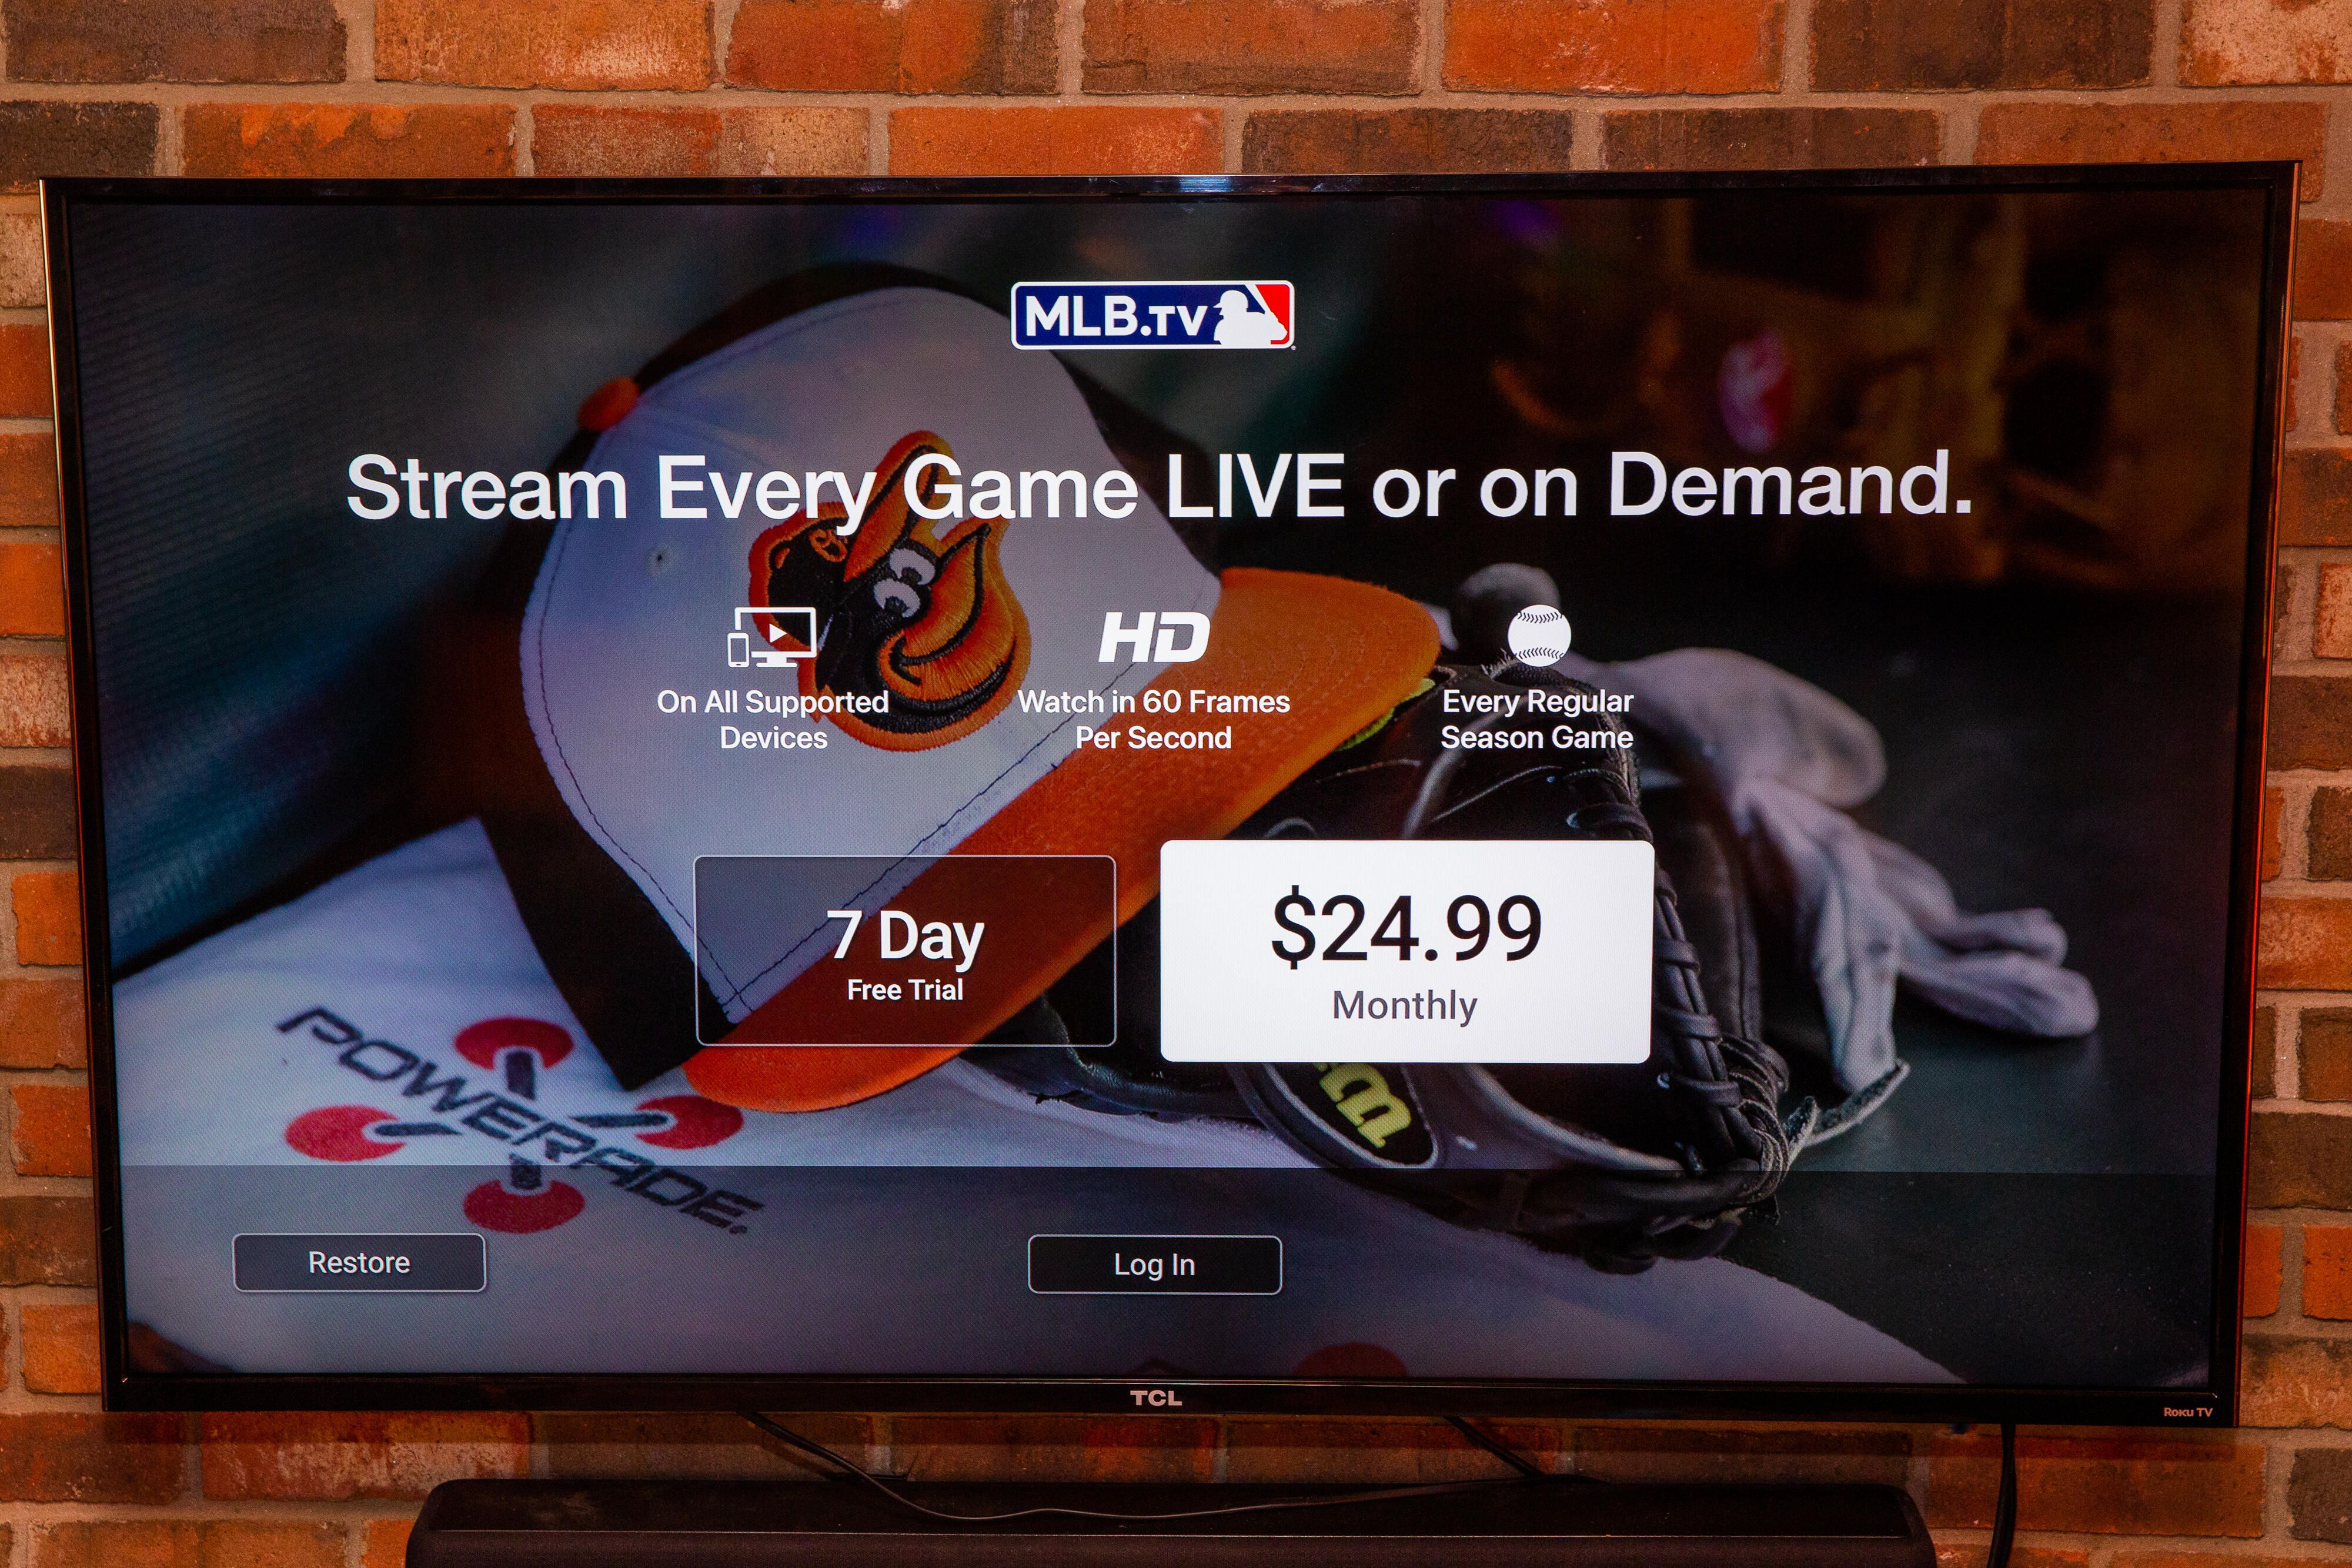 004-mlb-tv-streaming-app-2021-cnet-review